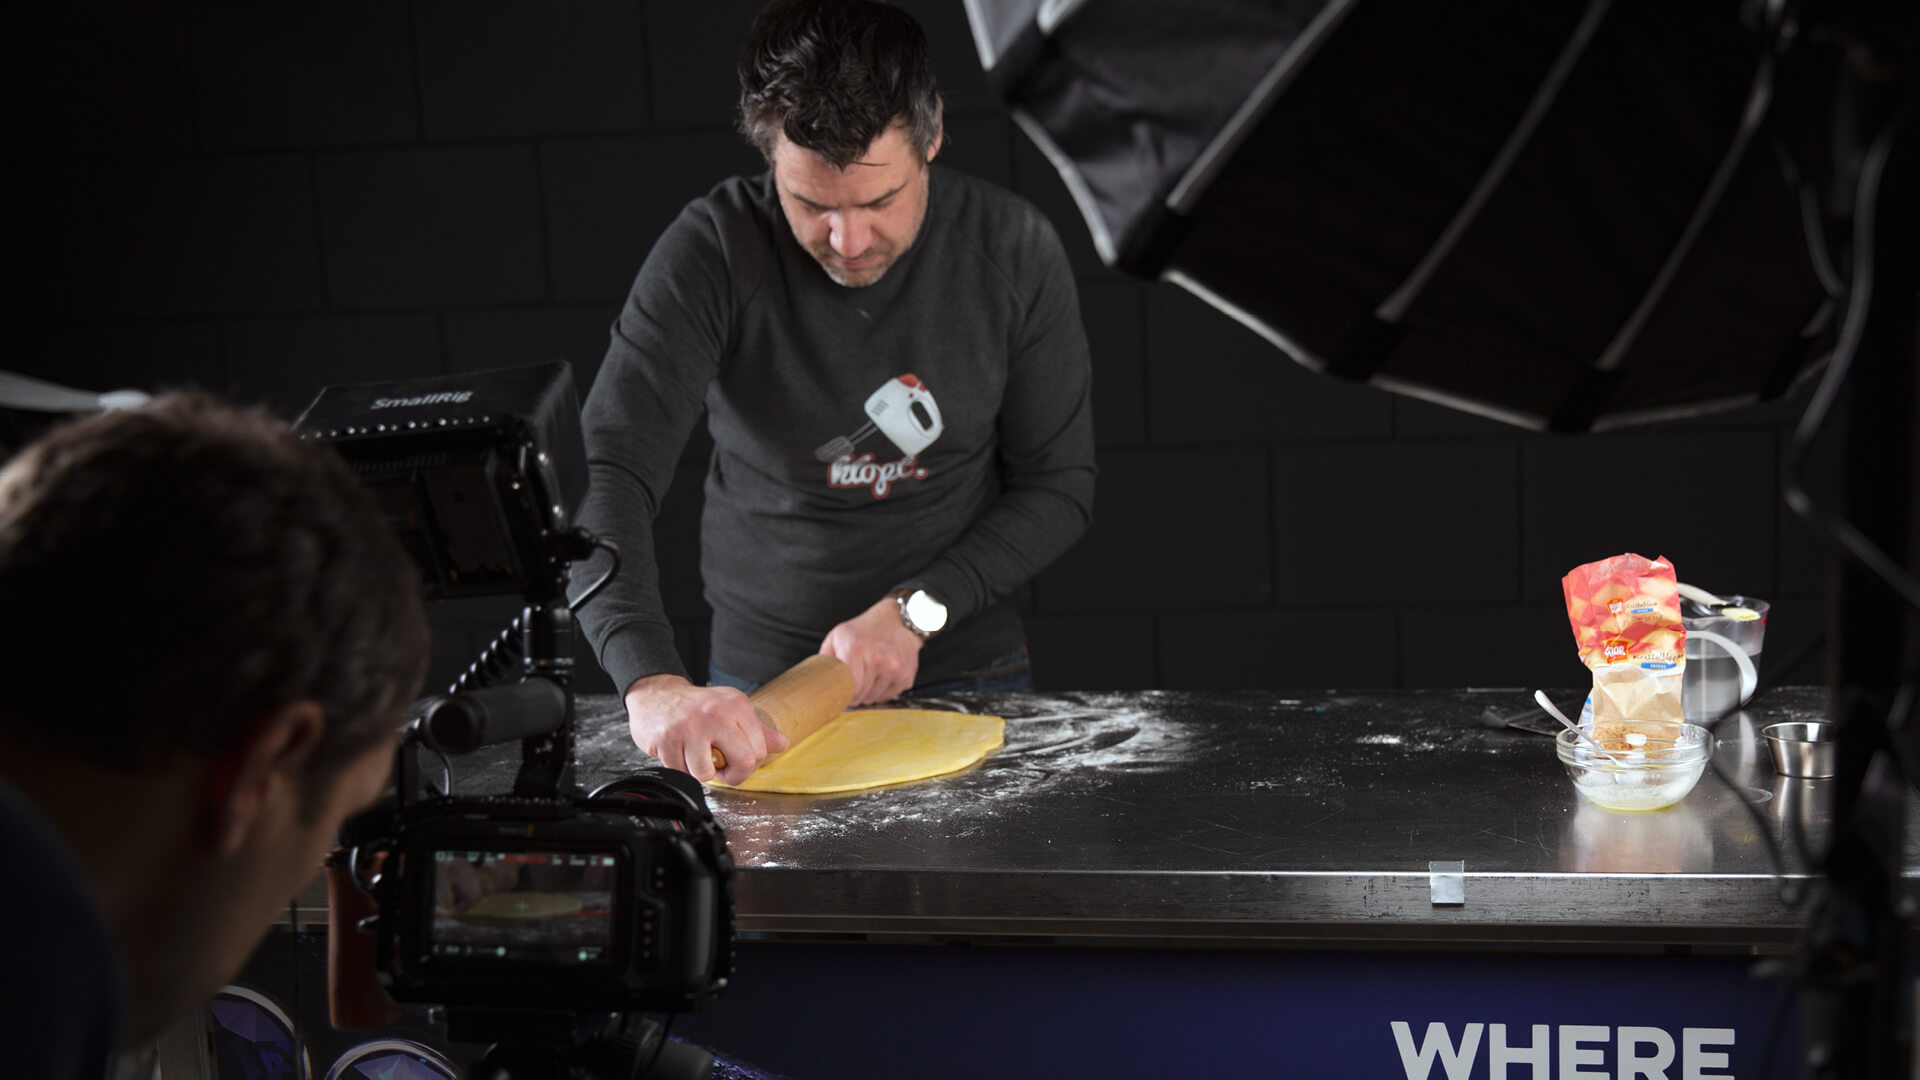 The New Croissant - Backstage